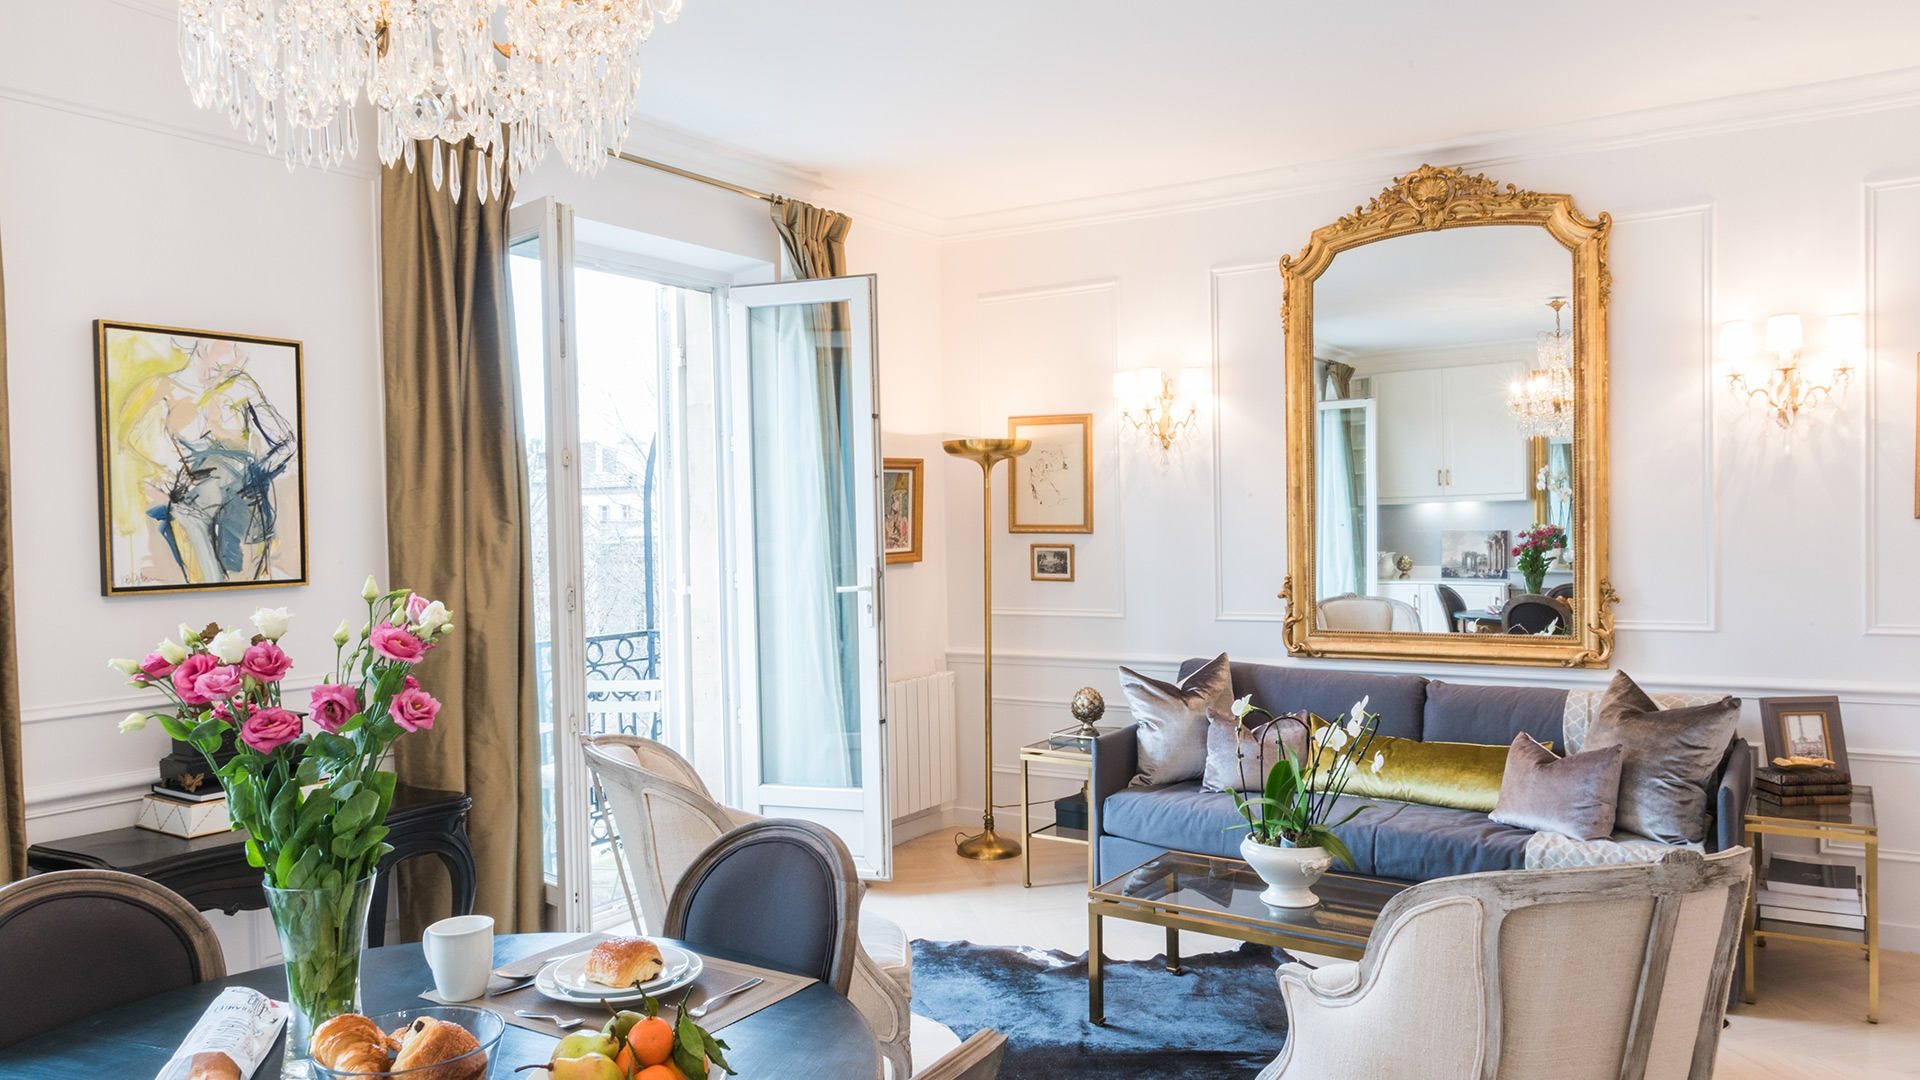 Remodeling Costs In Paris